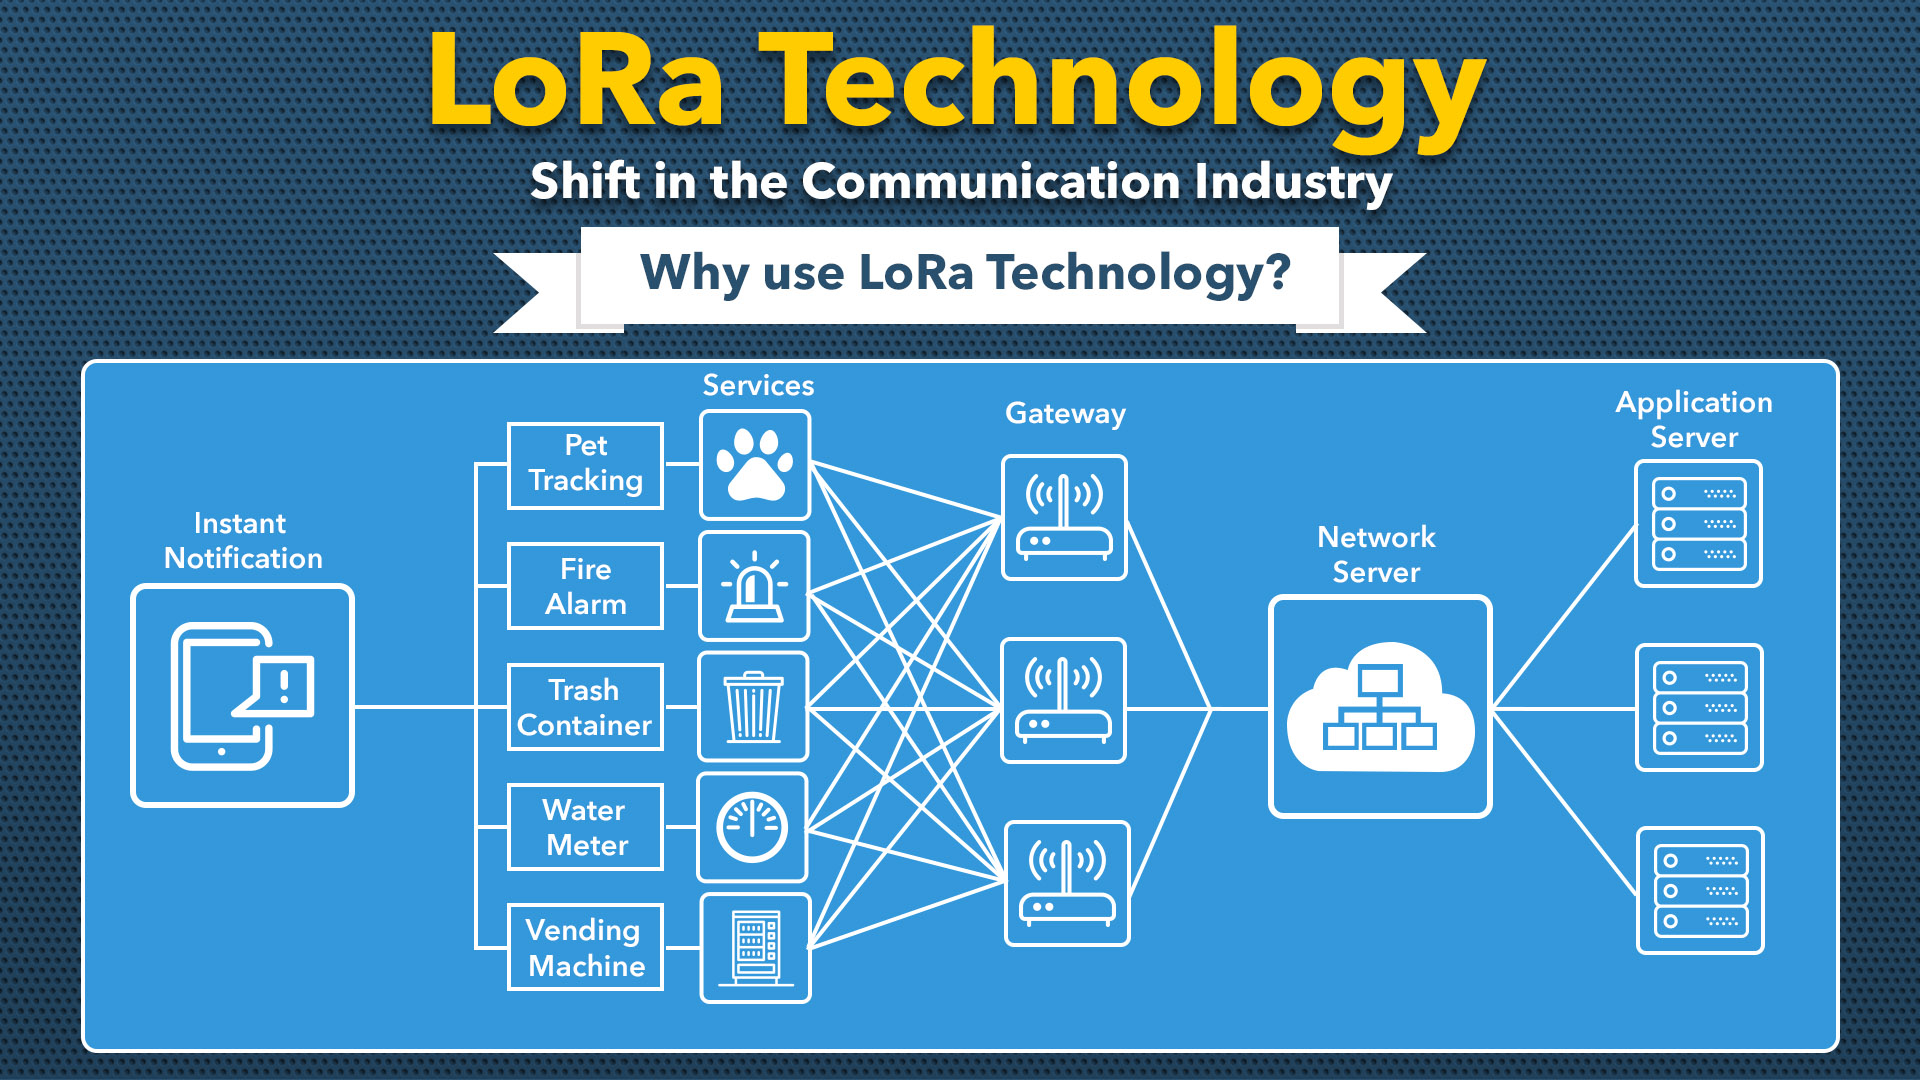 Telecom companies have a lot to gain by implementing LoRa technology